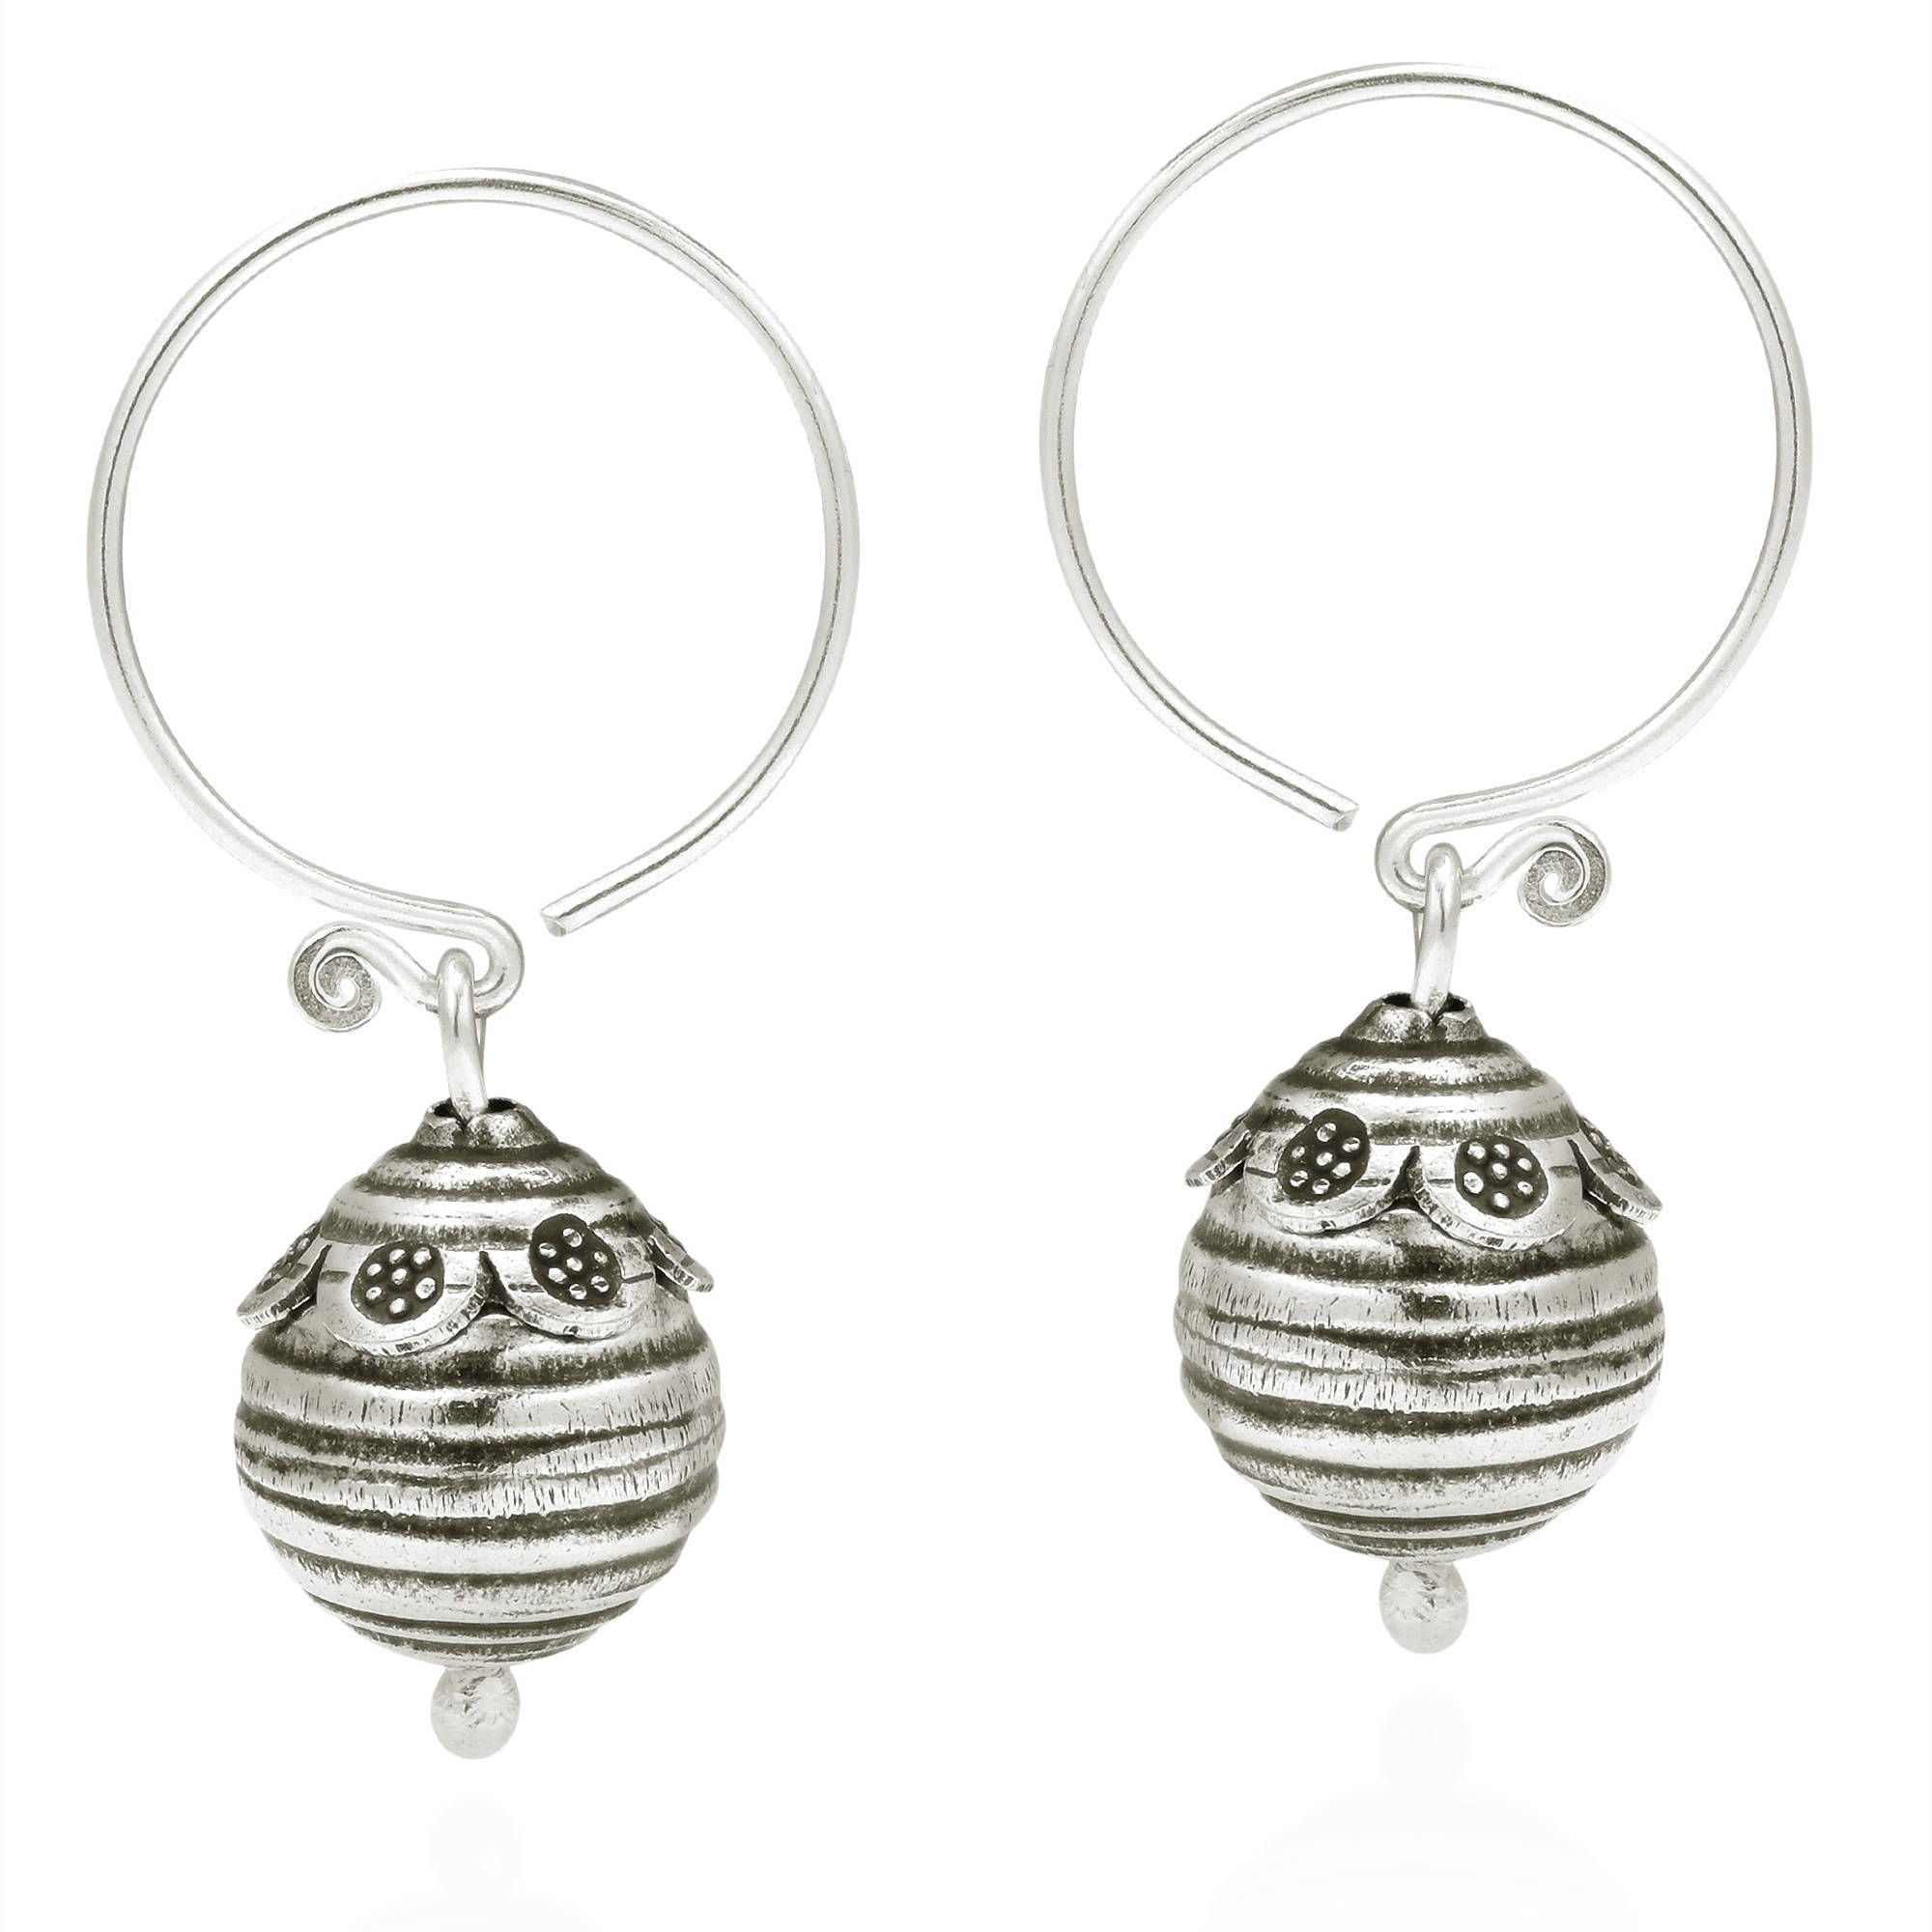 Handmade Flower Trimmed Bee Hive Karen Hill Tribe Silver Earrings Thailand On Free Shipping Orders Over 45 10609301